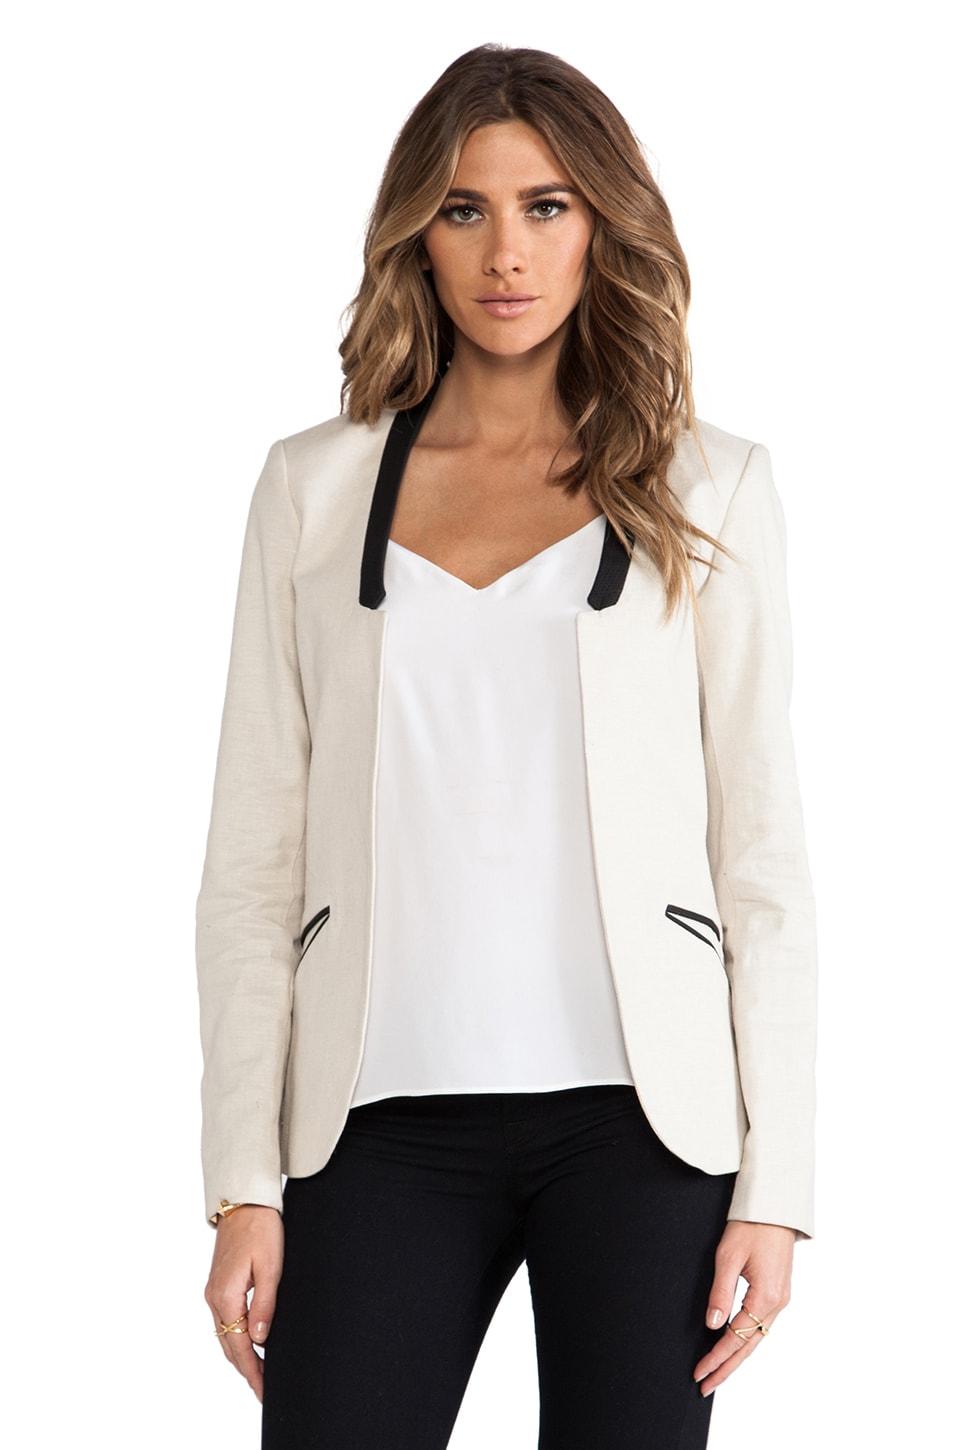 Maison Scotch Collarless Blazer in Cream